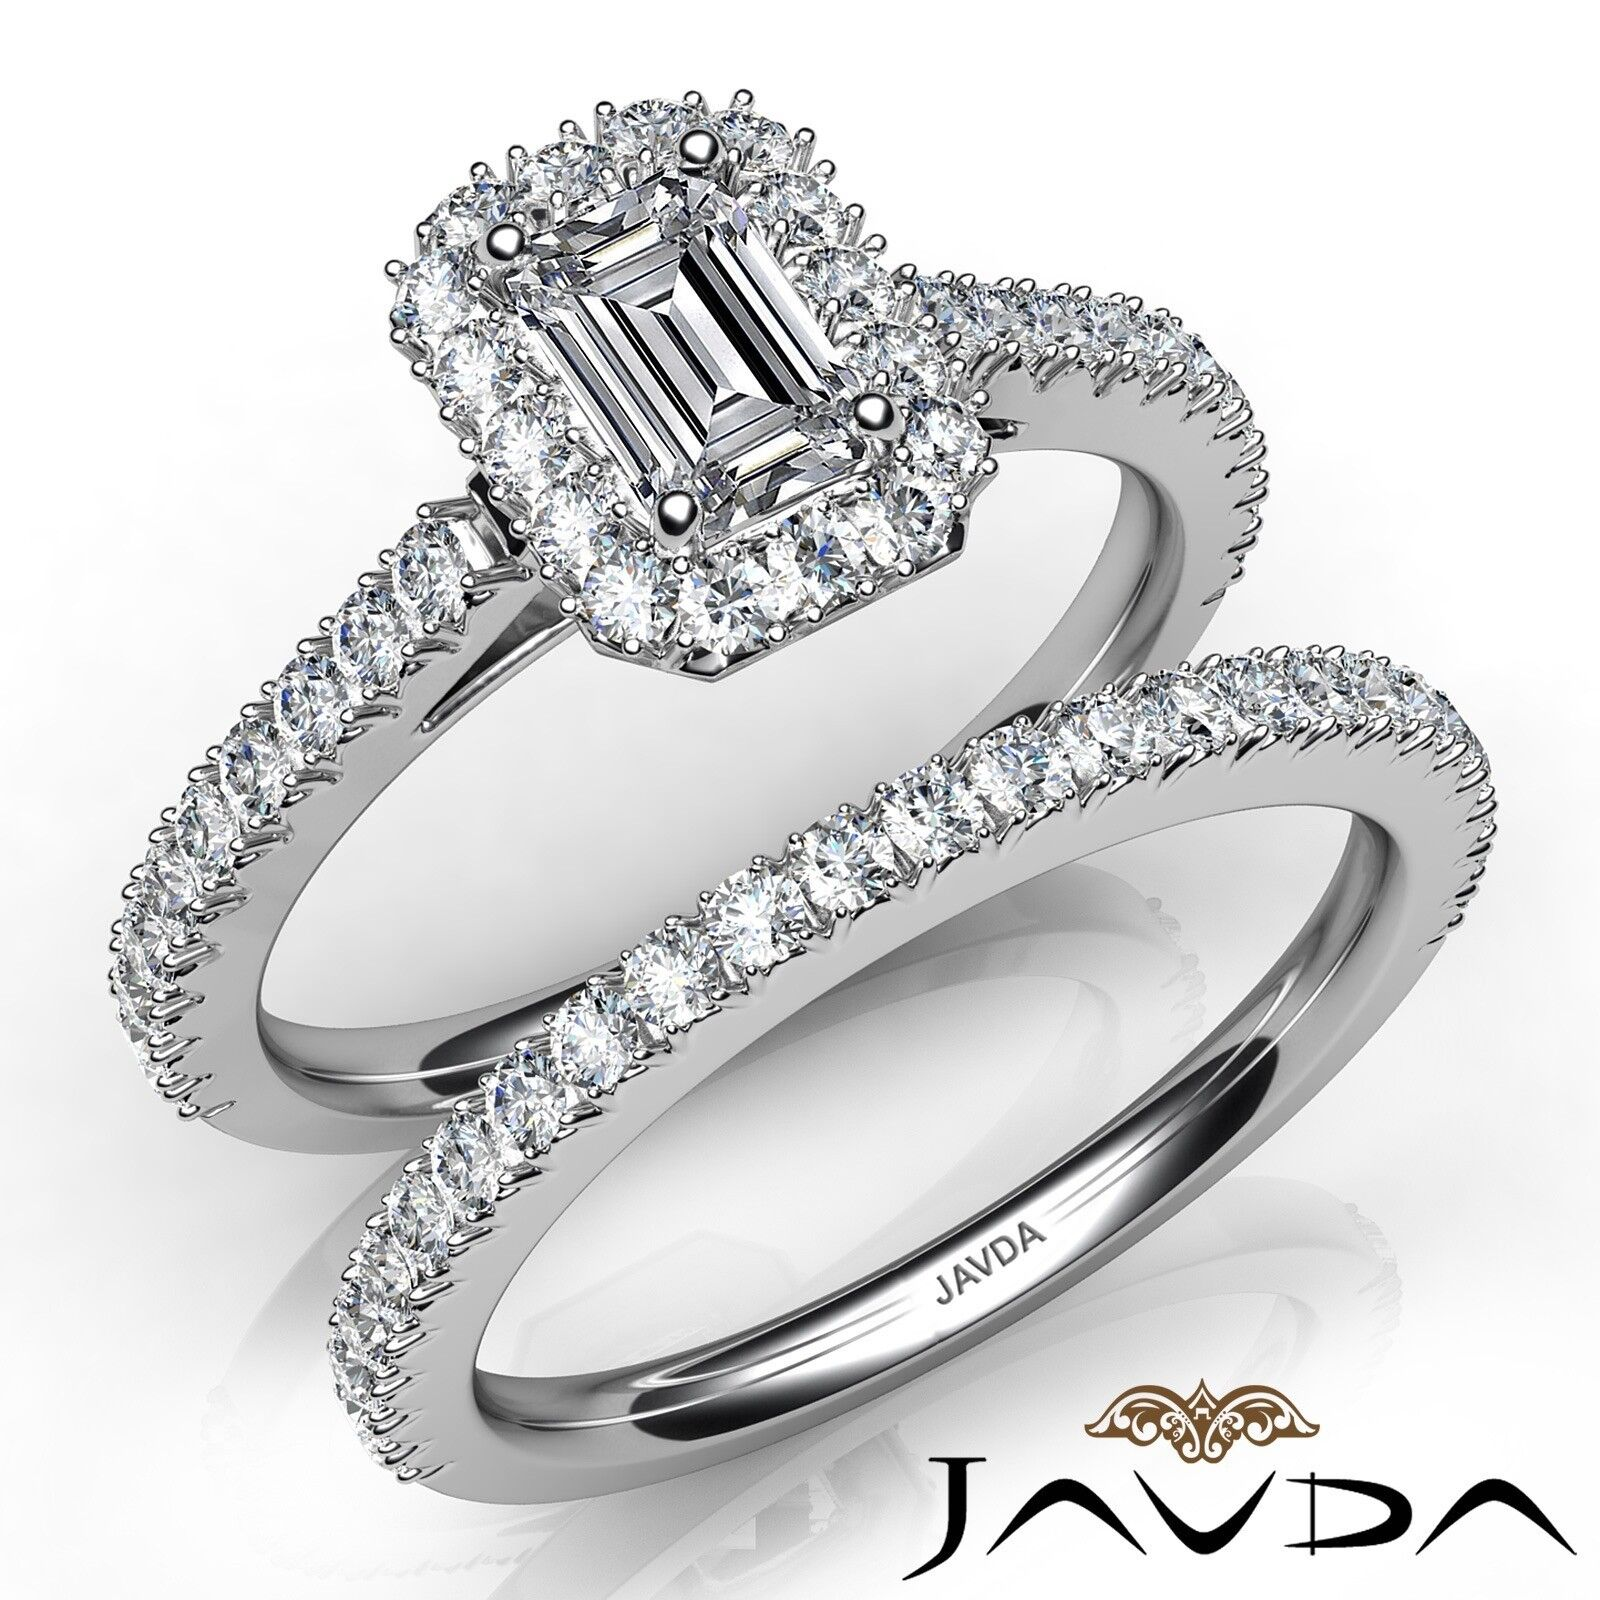 2.03ctw French Pave Halo Bridal Emerald Diamond Engagement Ring GIA I-VS2 W Gold